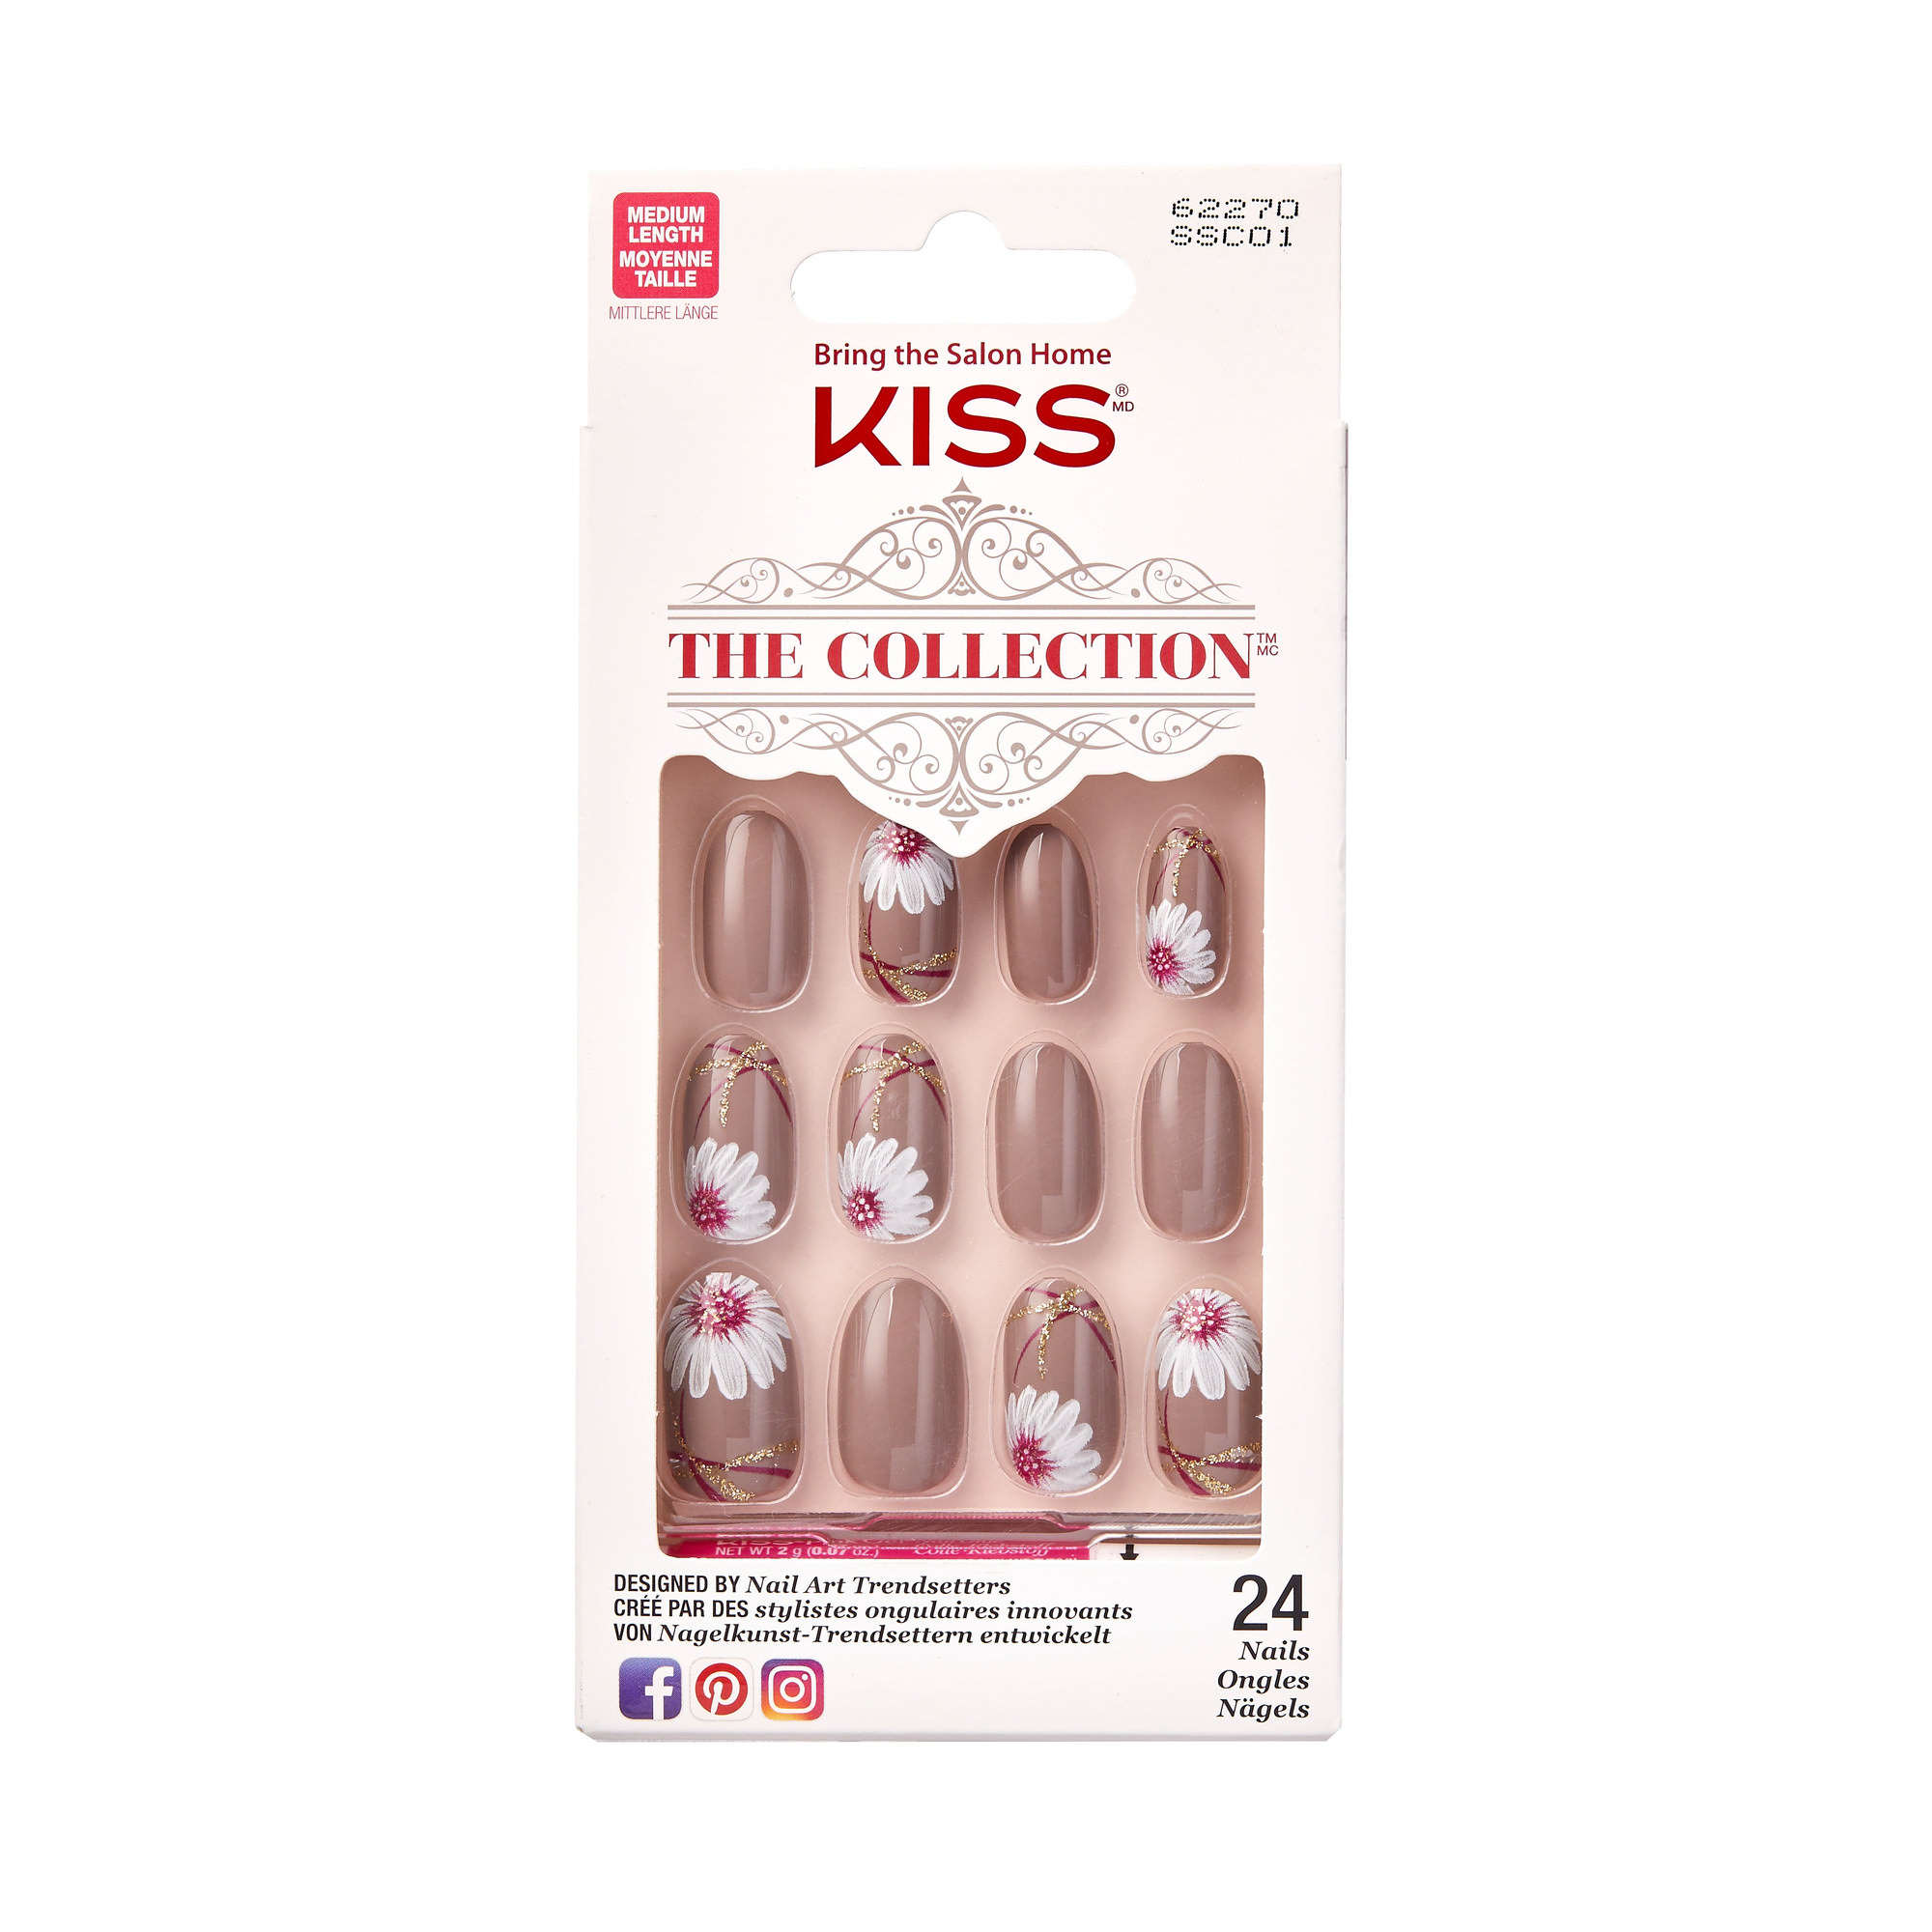 KISS The Collection Medium Length Nails, Imagination